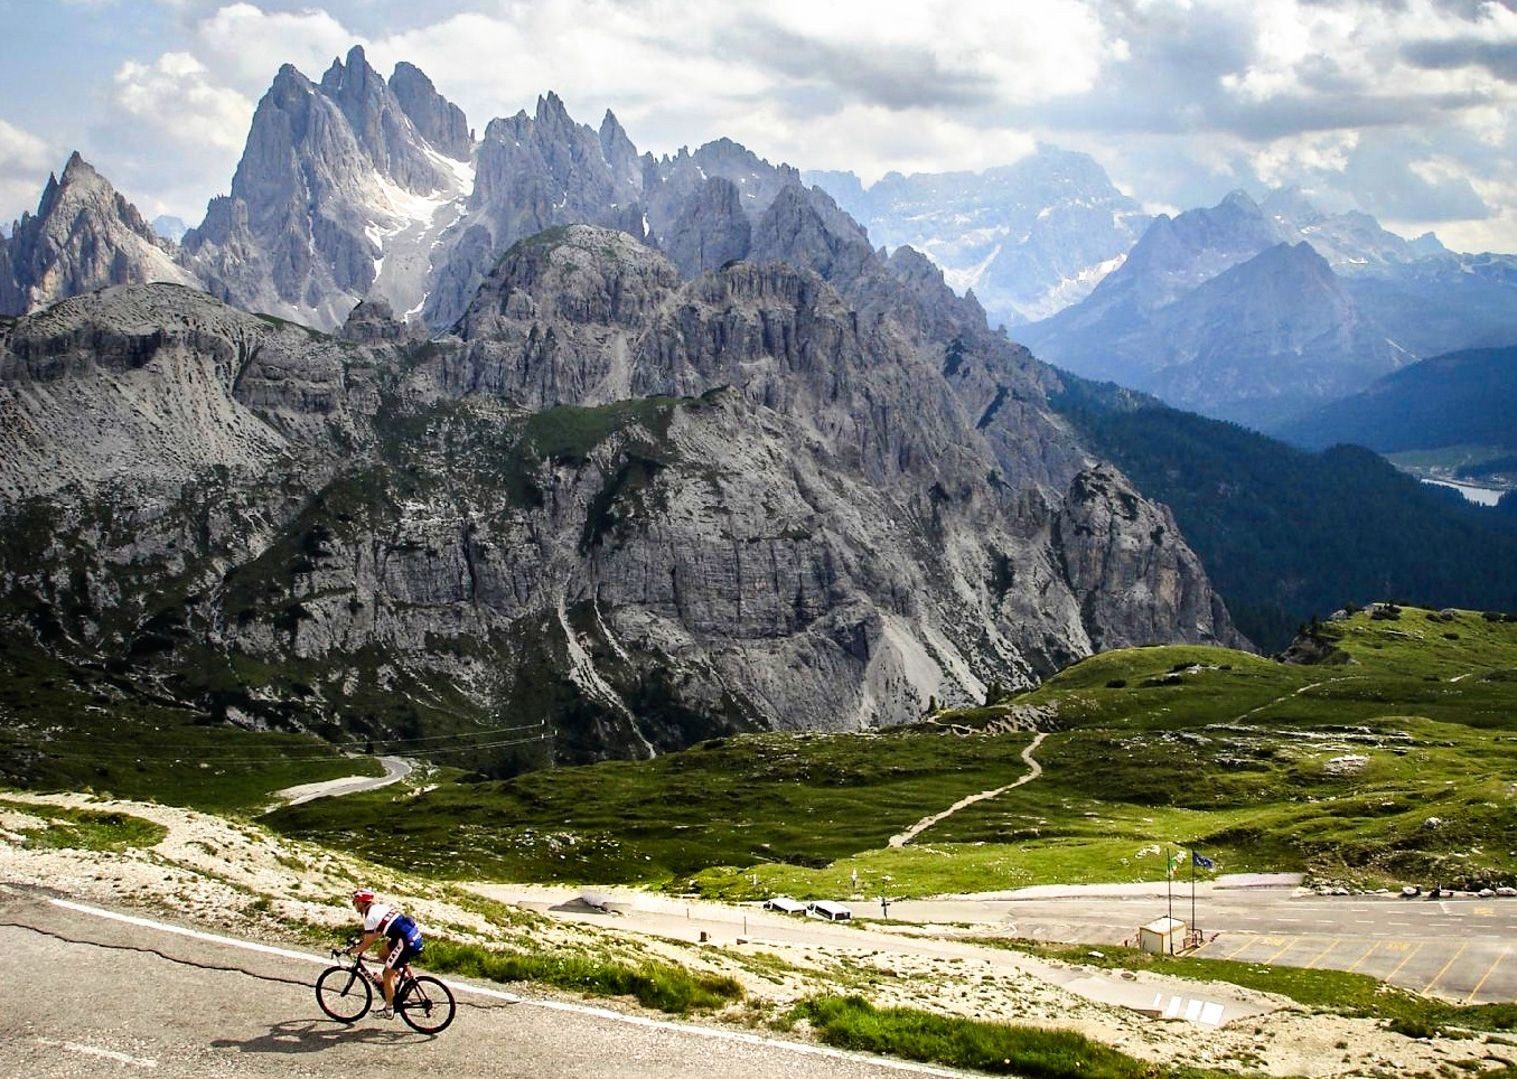 incredible-mountain-climbs-scenery-on-road-bike.jpg - Italy - Italian Dolomites - Guided Road Cycling Holiday - Italia Road Cycling